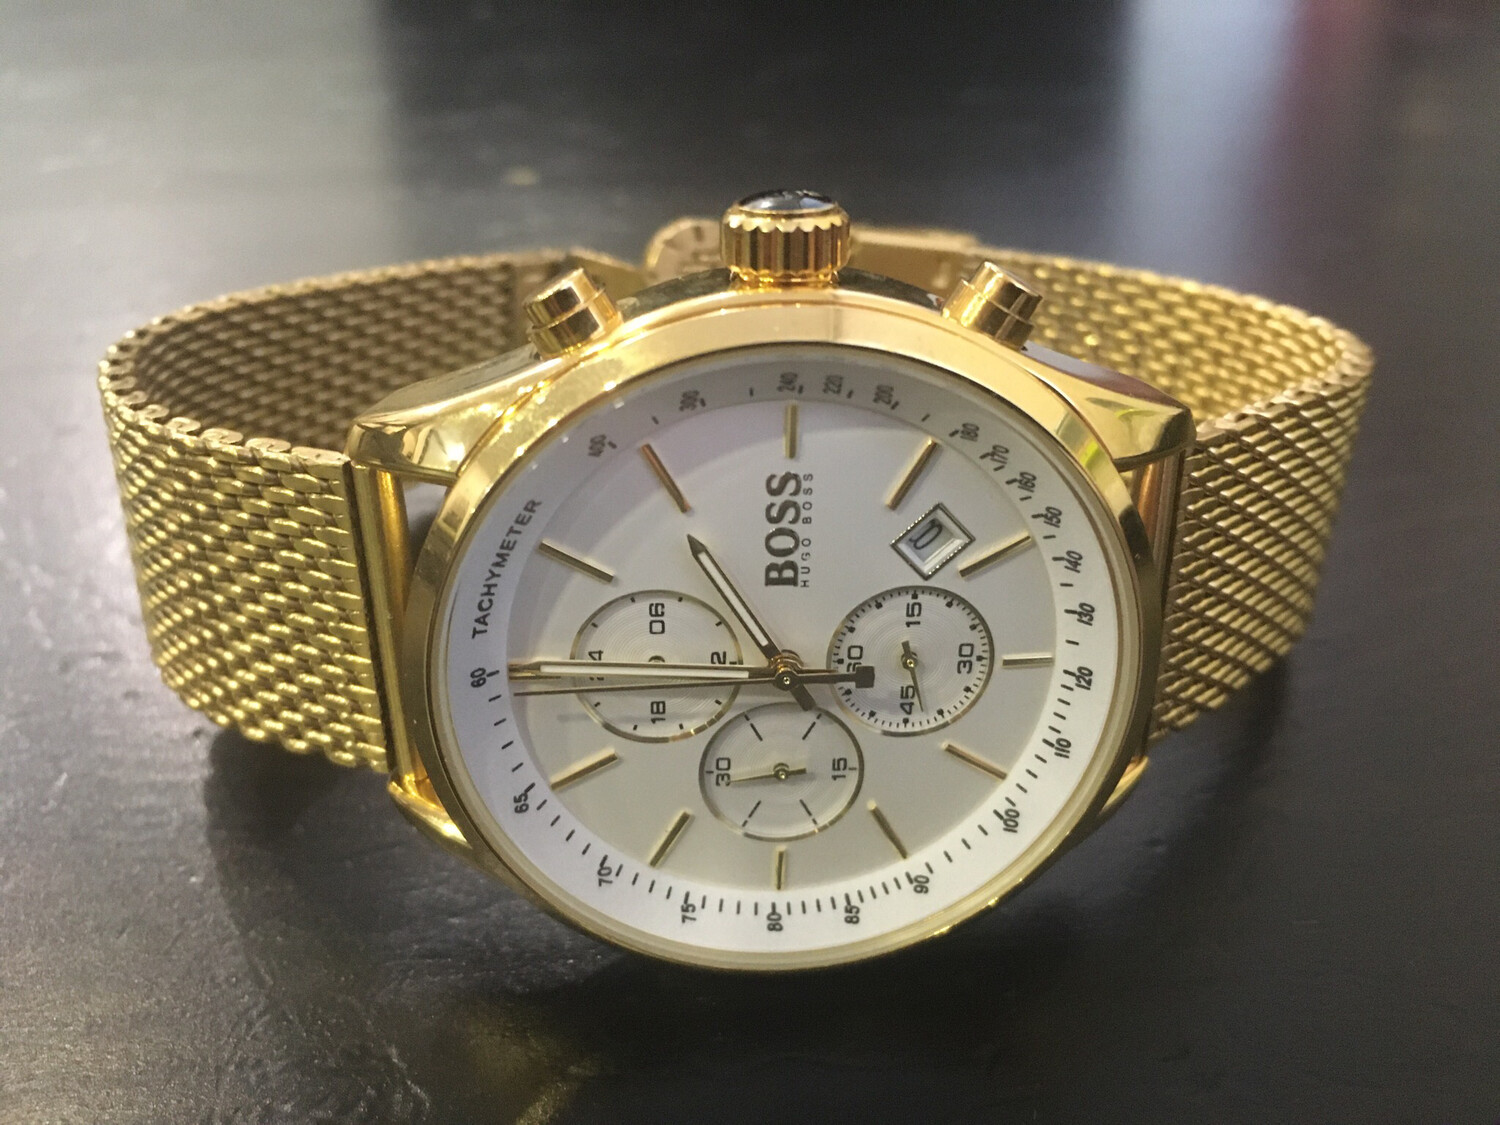 Boss hugo boss watch mens quartz chronograph